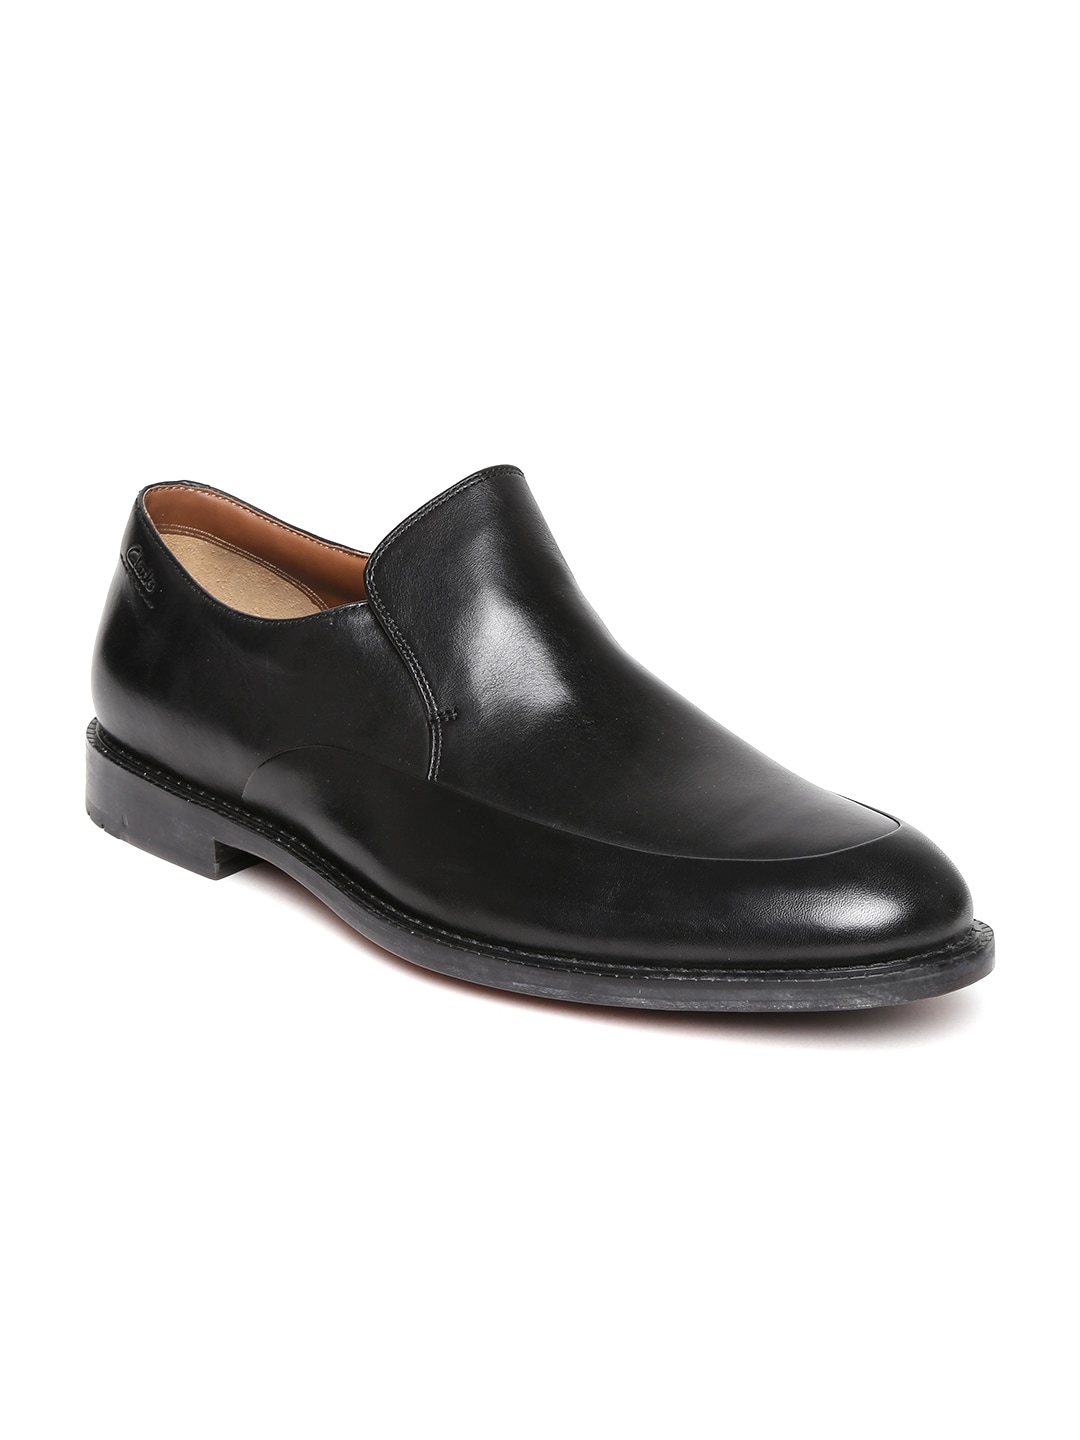 5658e65328c Clarks Shoes - Buy Clarks Shoes Online in India - Myntra